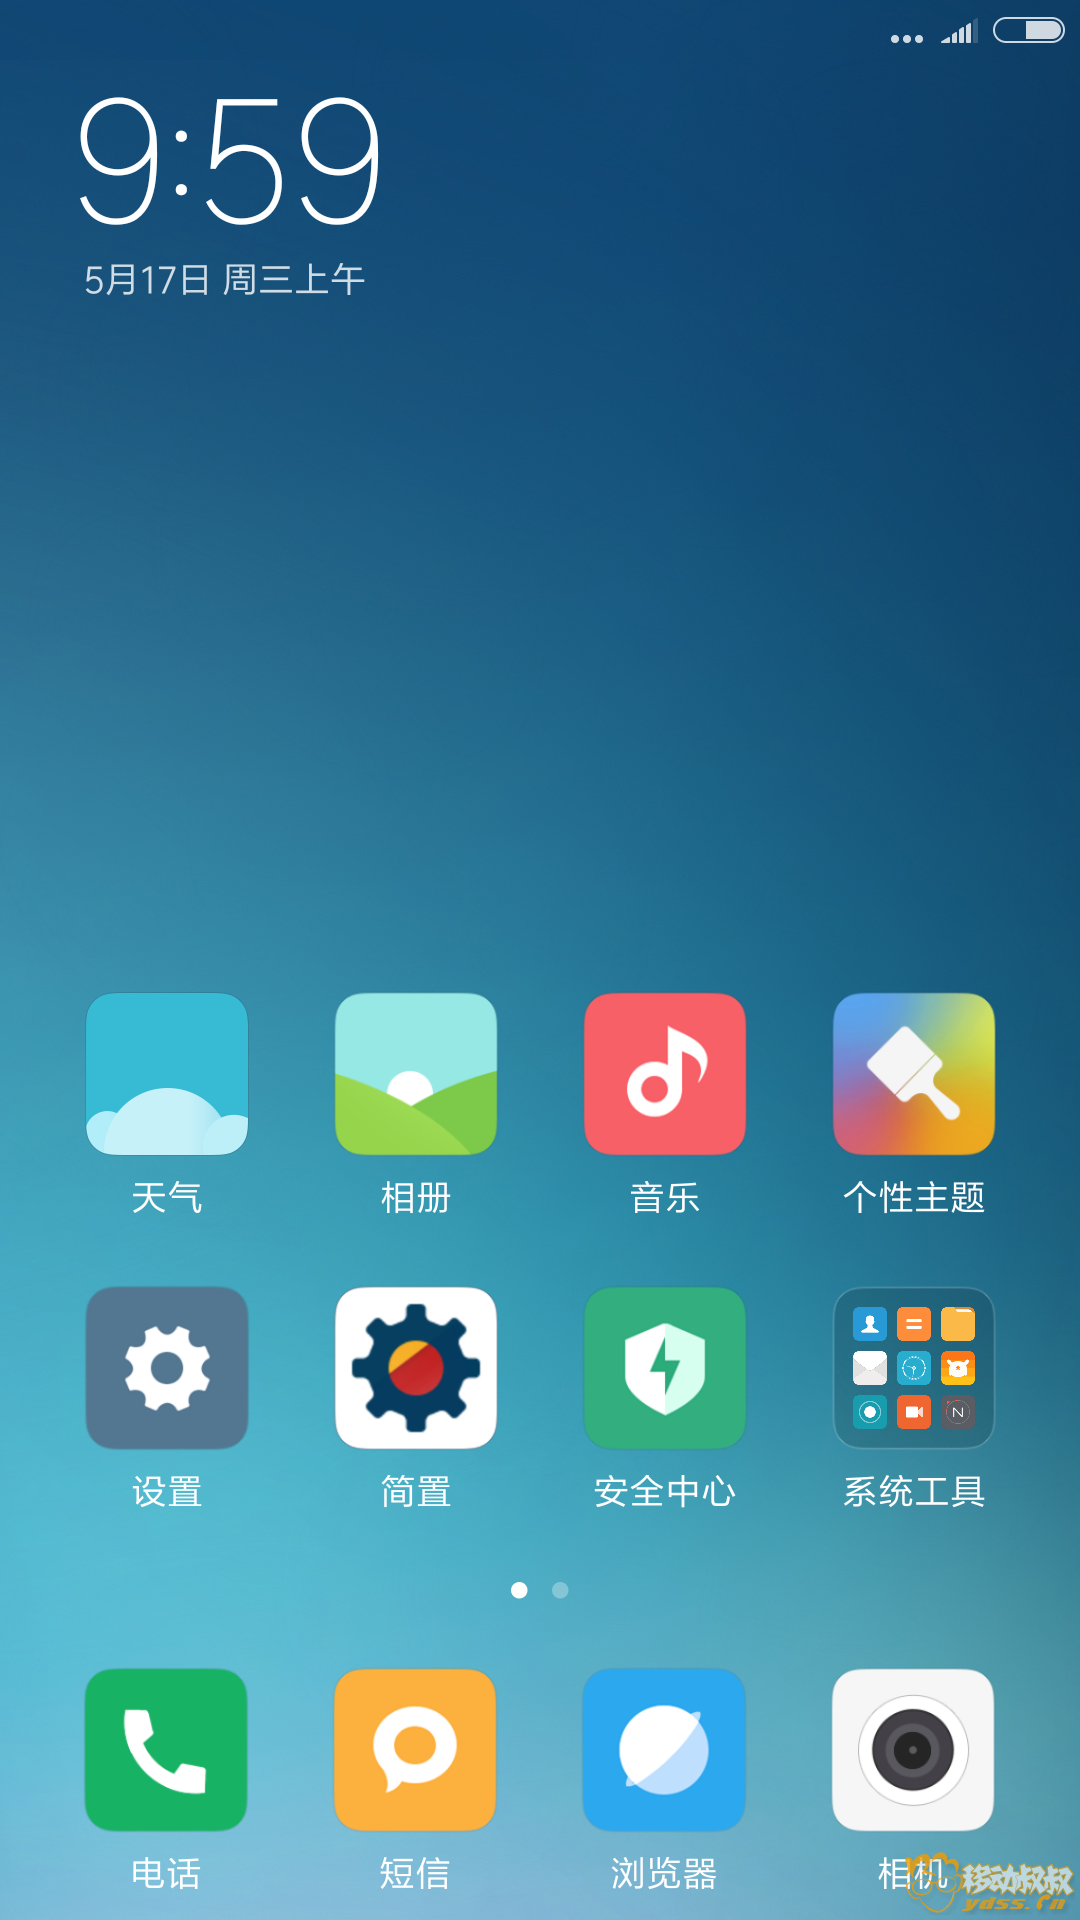 Screenshot_2017-05-17-09-59-55-637_com.miui.home.png